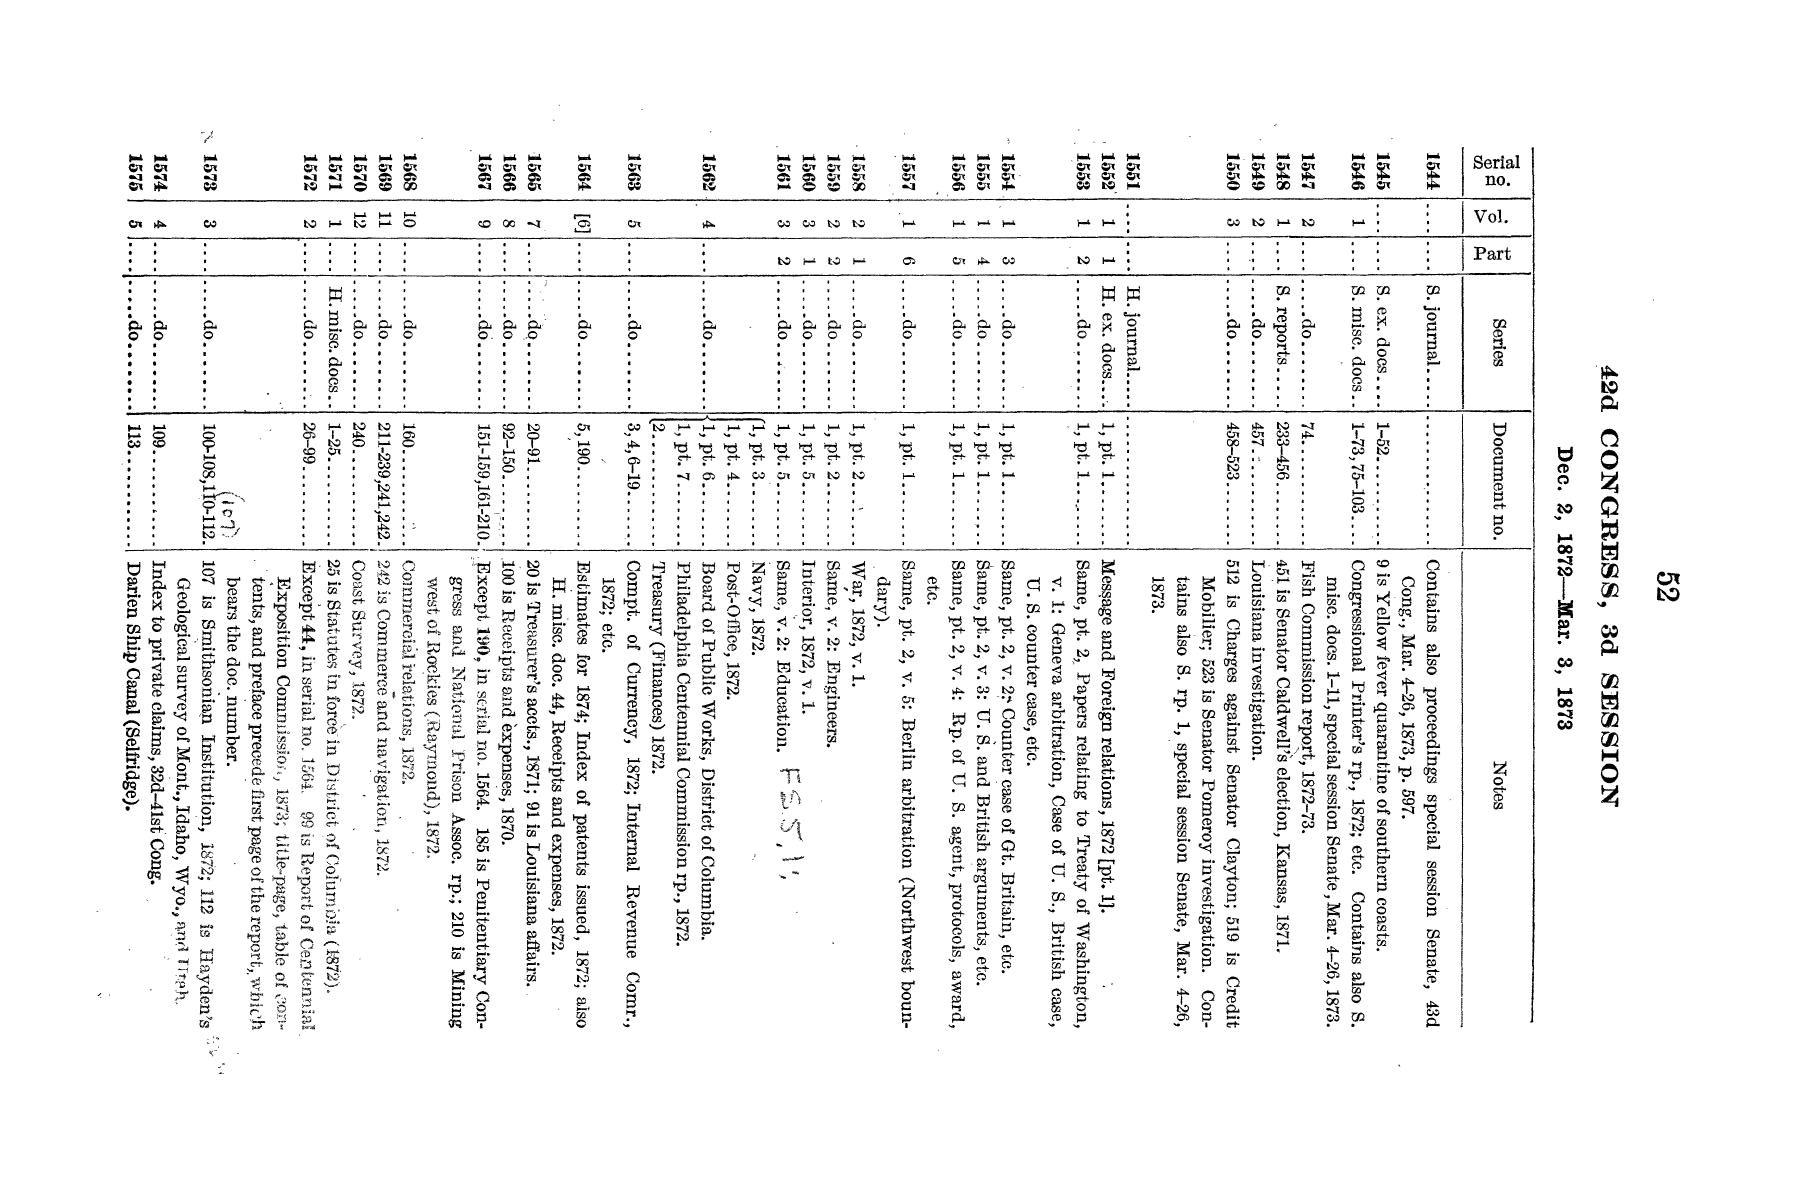 Checklist of United States Public Documents, 1789-1909, Third Edition Revised and Enlarged, Volume 1, Lists of Congressional and Departmental Publications                                                                                                      52